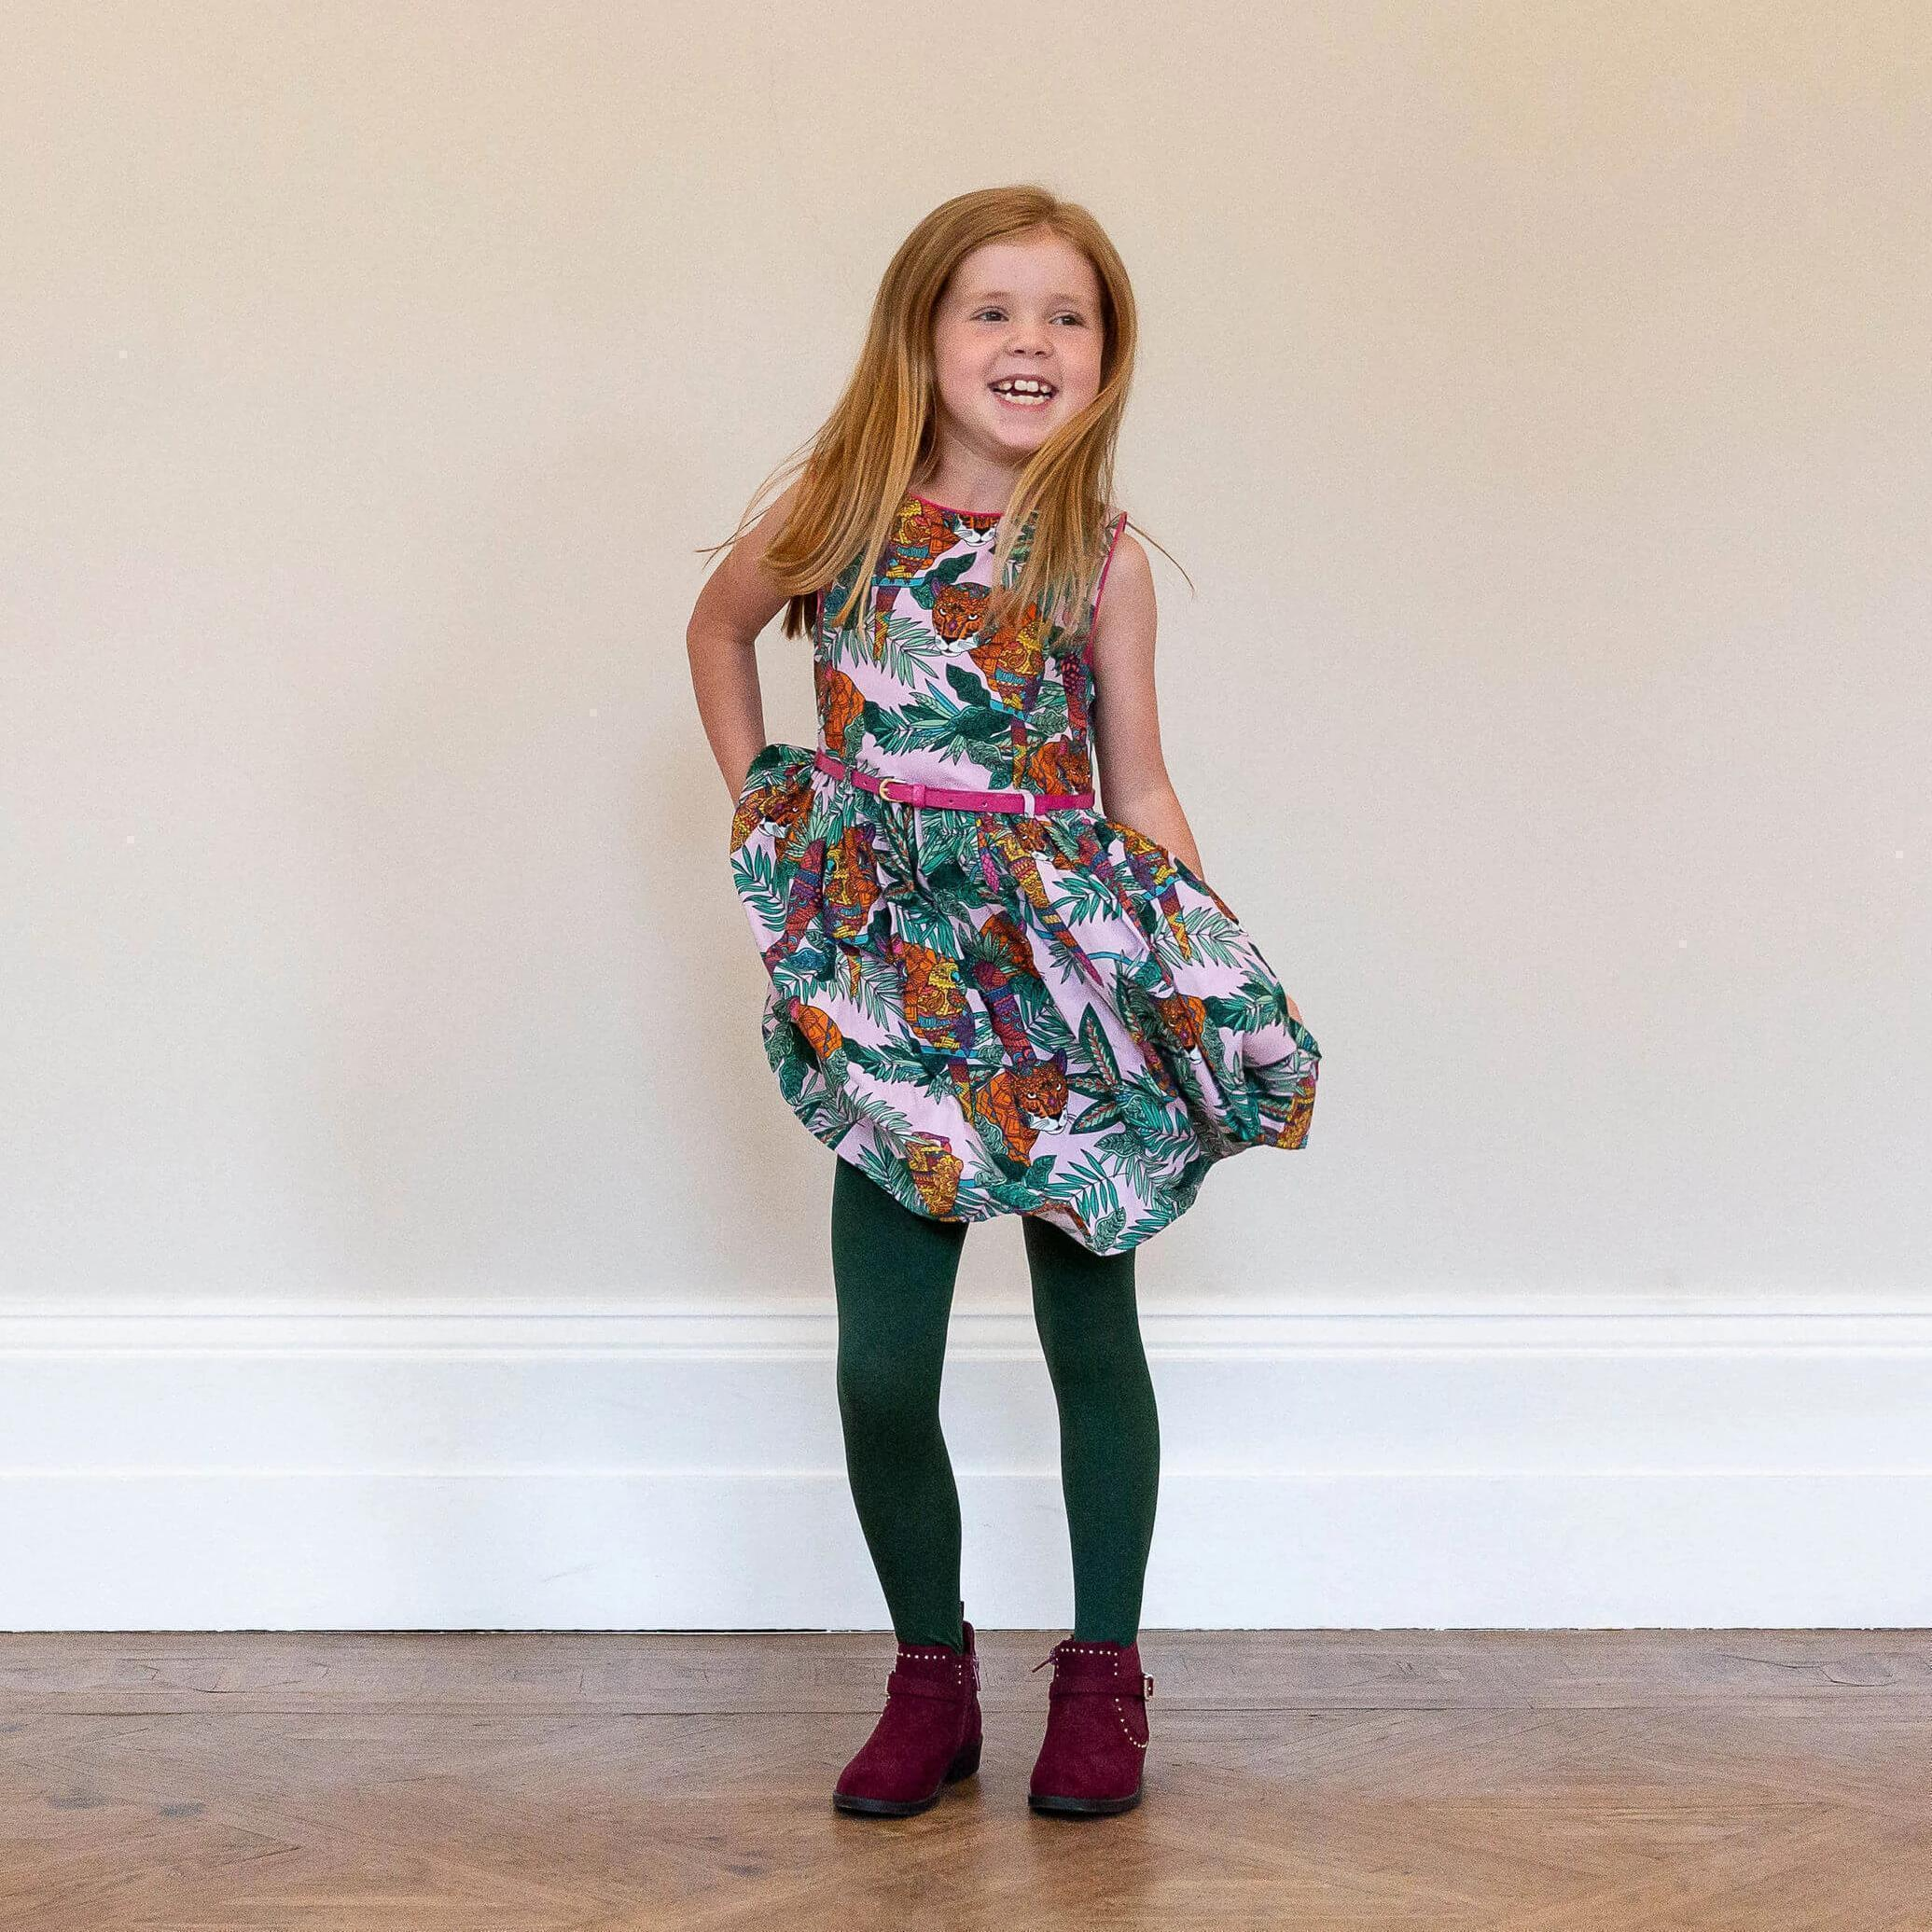 Tights - Kids Tights - Hit The Bottle Green